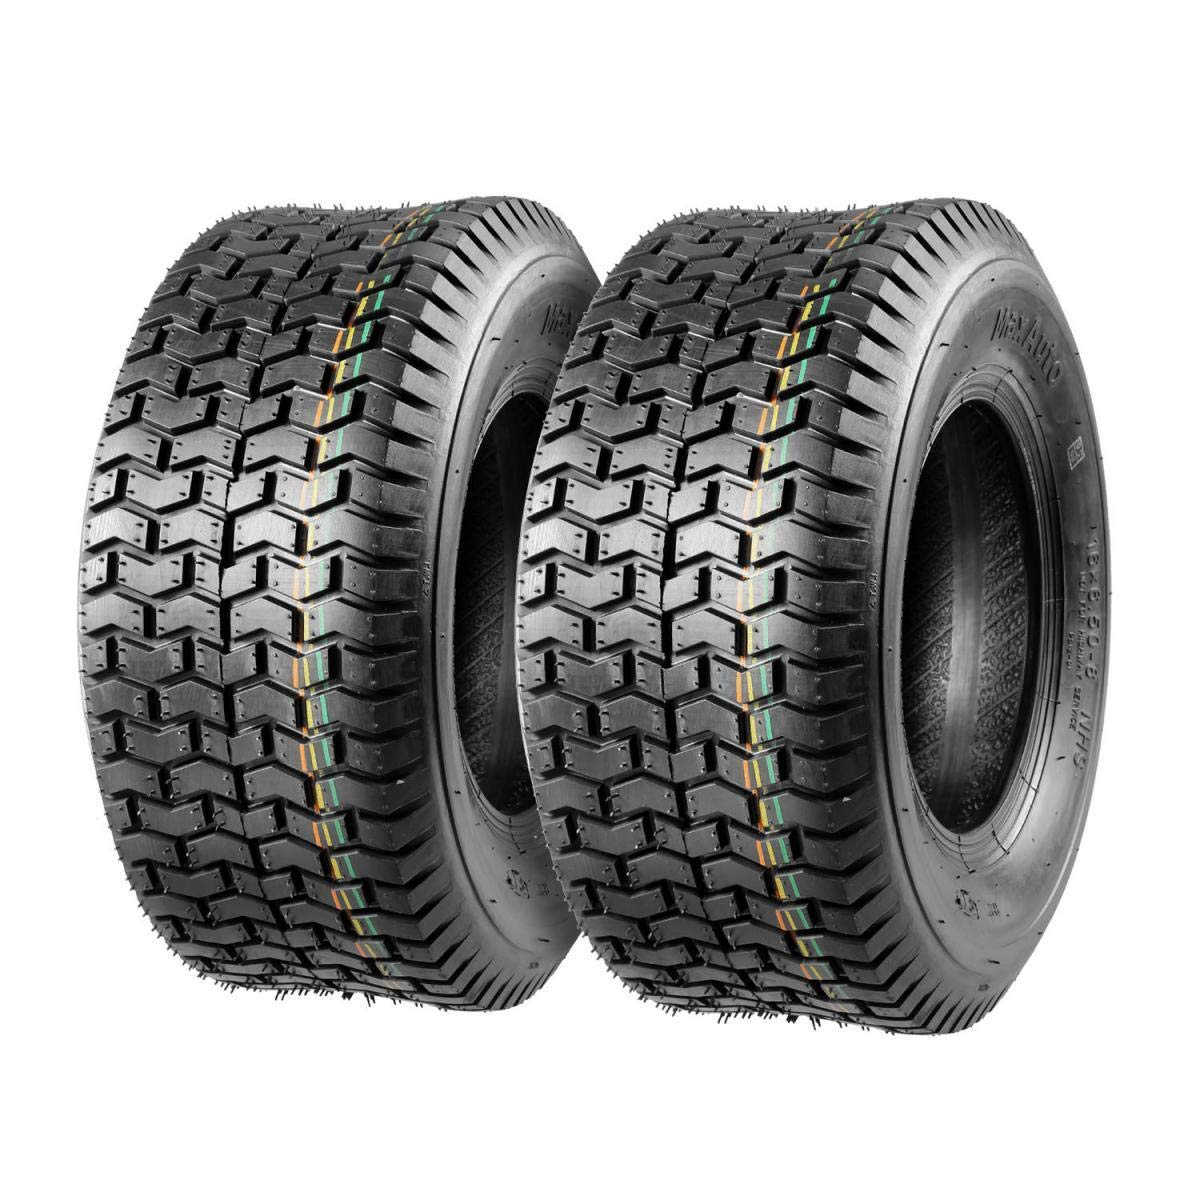 Set of 2 16x6.50-8 16/6.50-8 6-6.50-8 16x650x8 Turf Tires 4Ply Tubeless Replacement for John Deere Lawn Tractor Turf Saver, DOT Compliant by MaxAuto